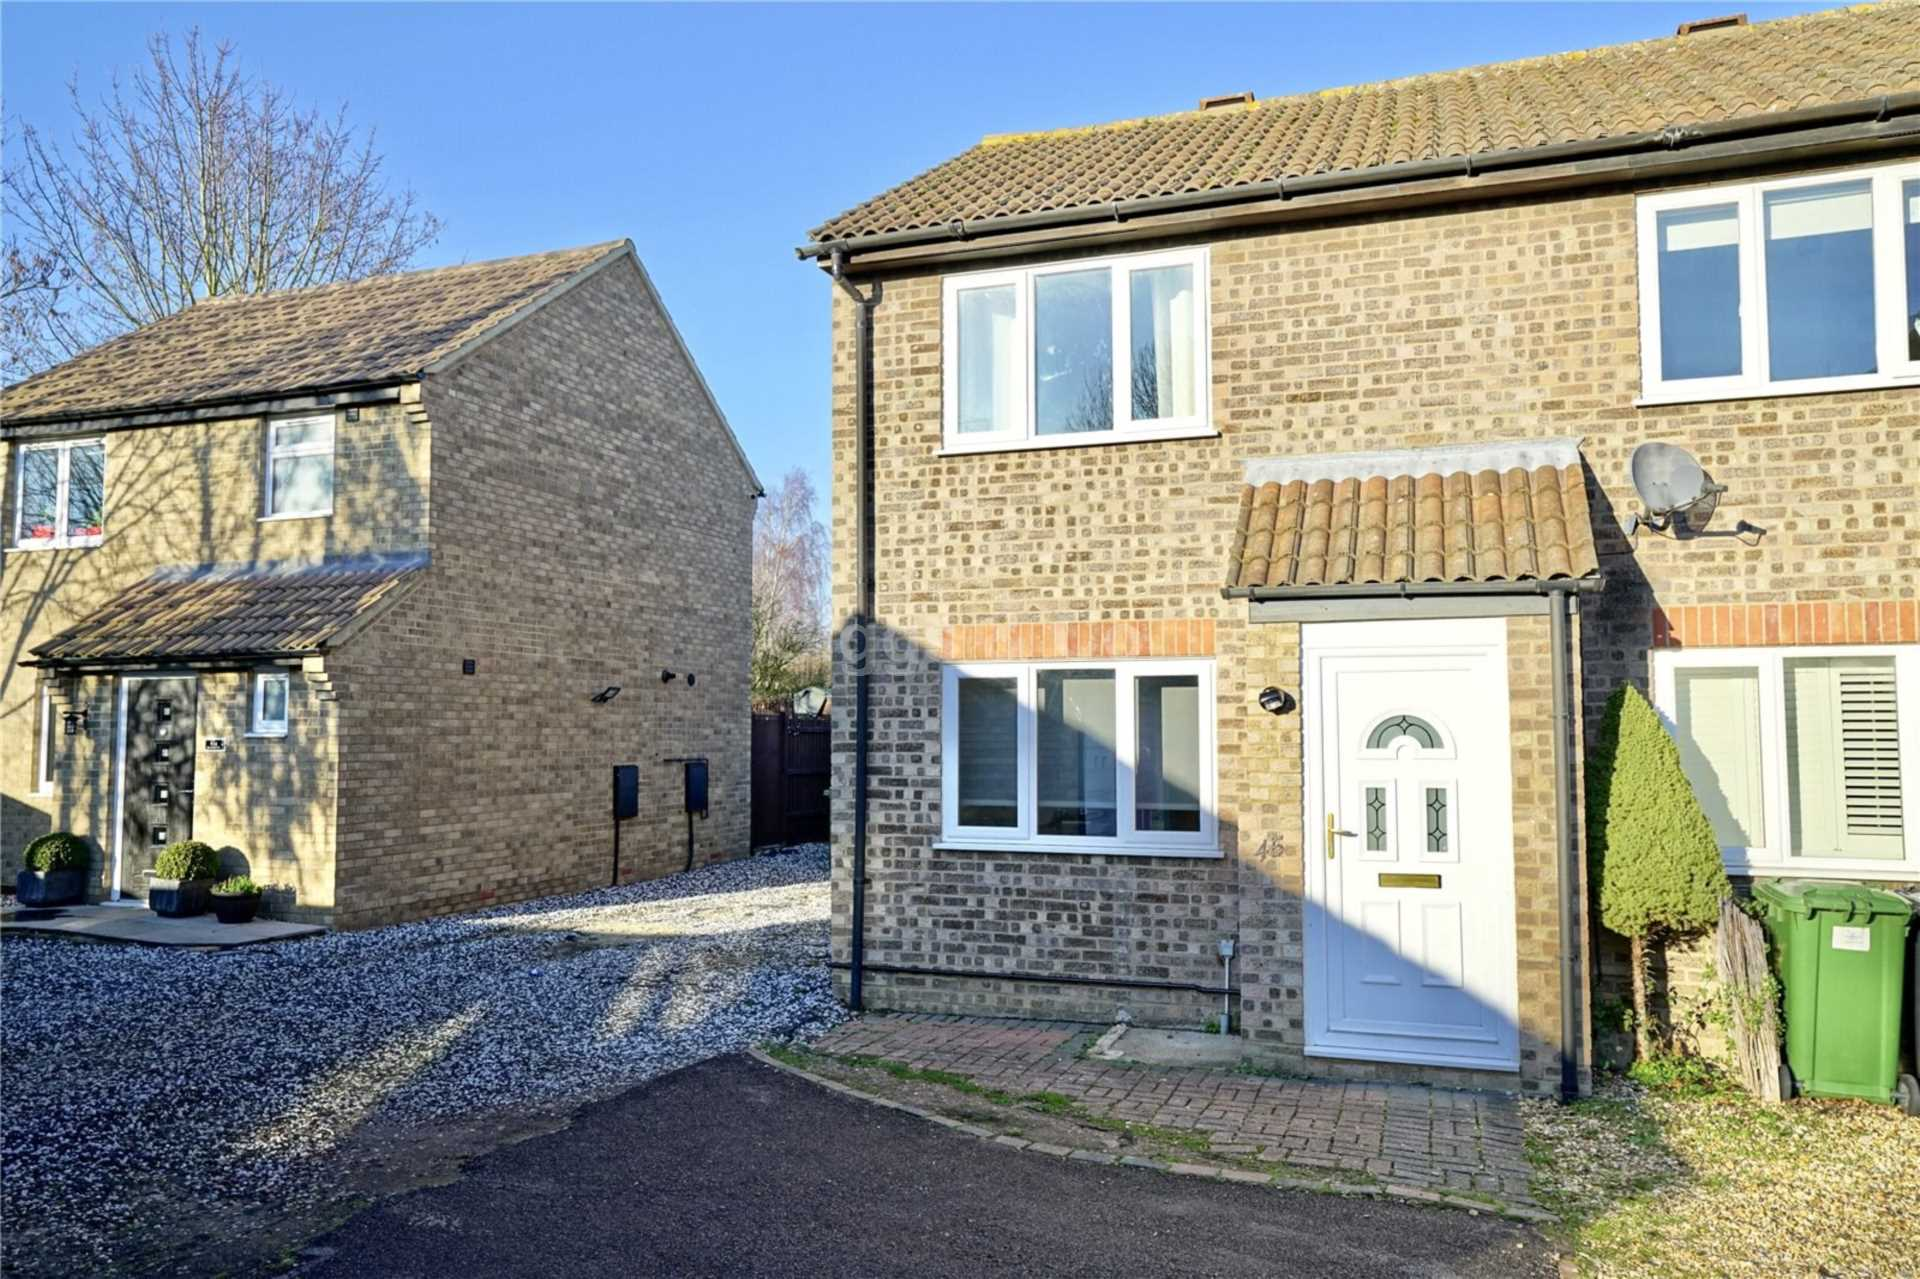 2 bed semi-detached house to rent in Cunningham Way, Eaton Socon, PE19